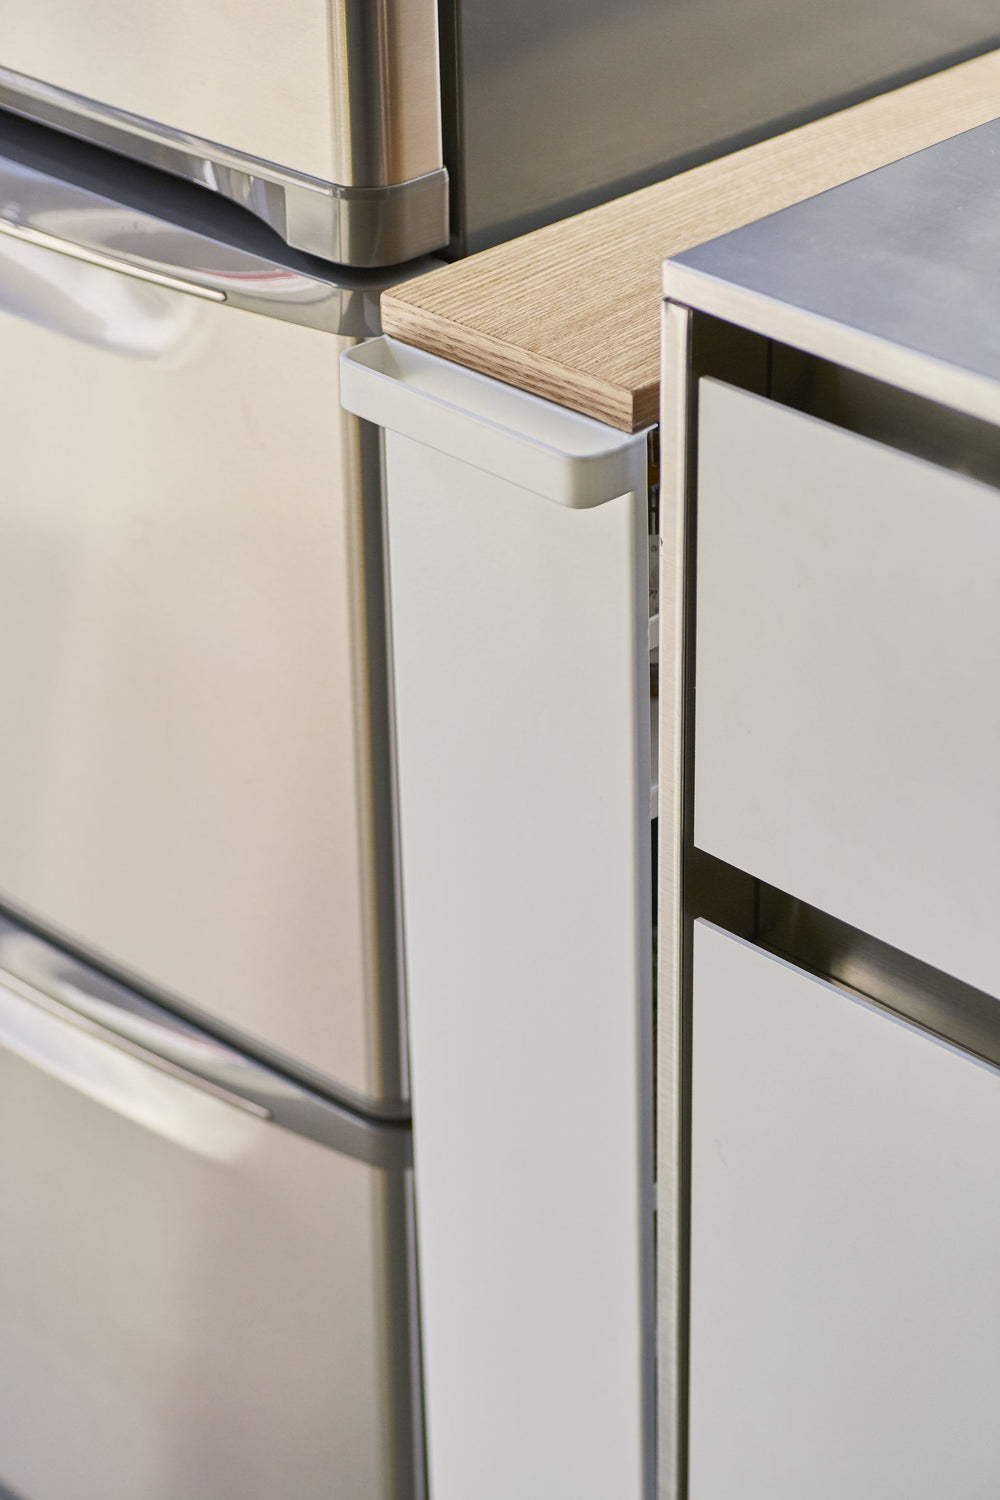 Close up of the Yamazaki Rolling Slim Storage Cart tucked seamlessly between a refrigerator and countertop, with handle facing outward